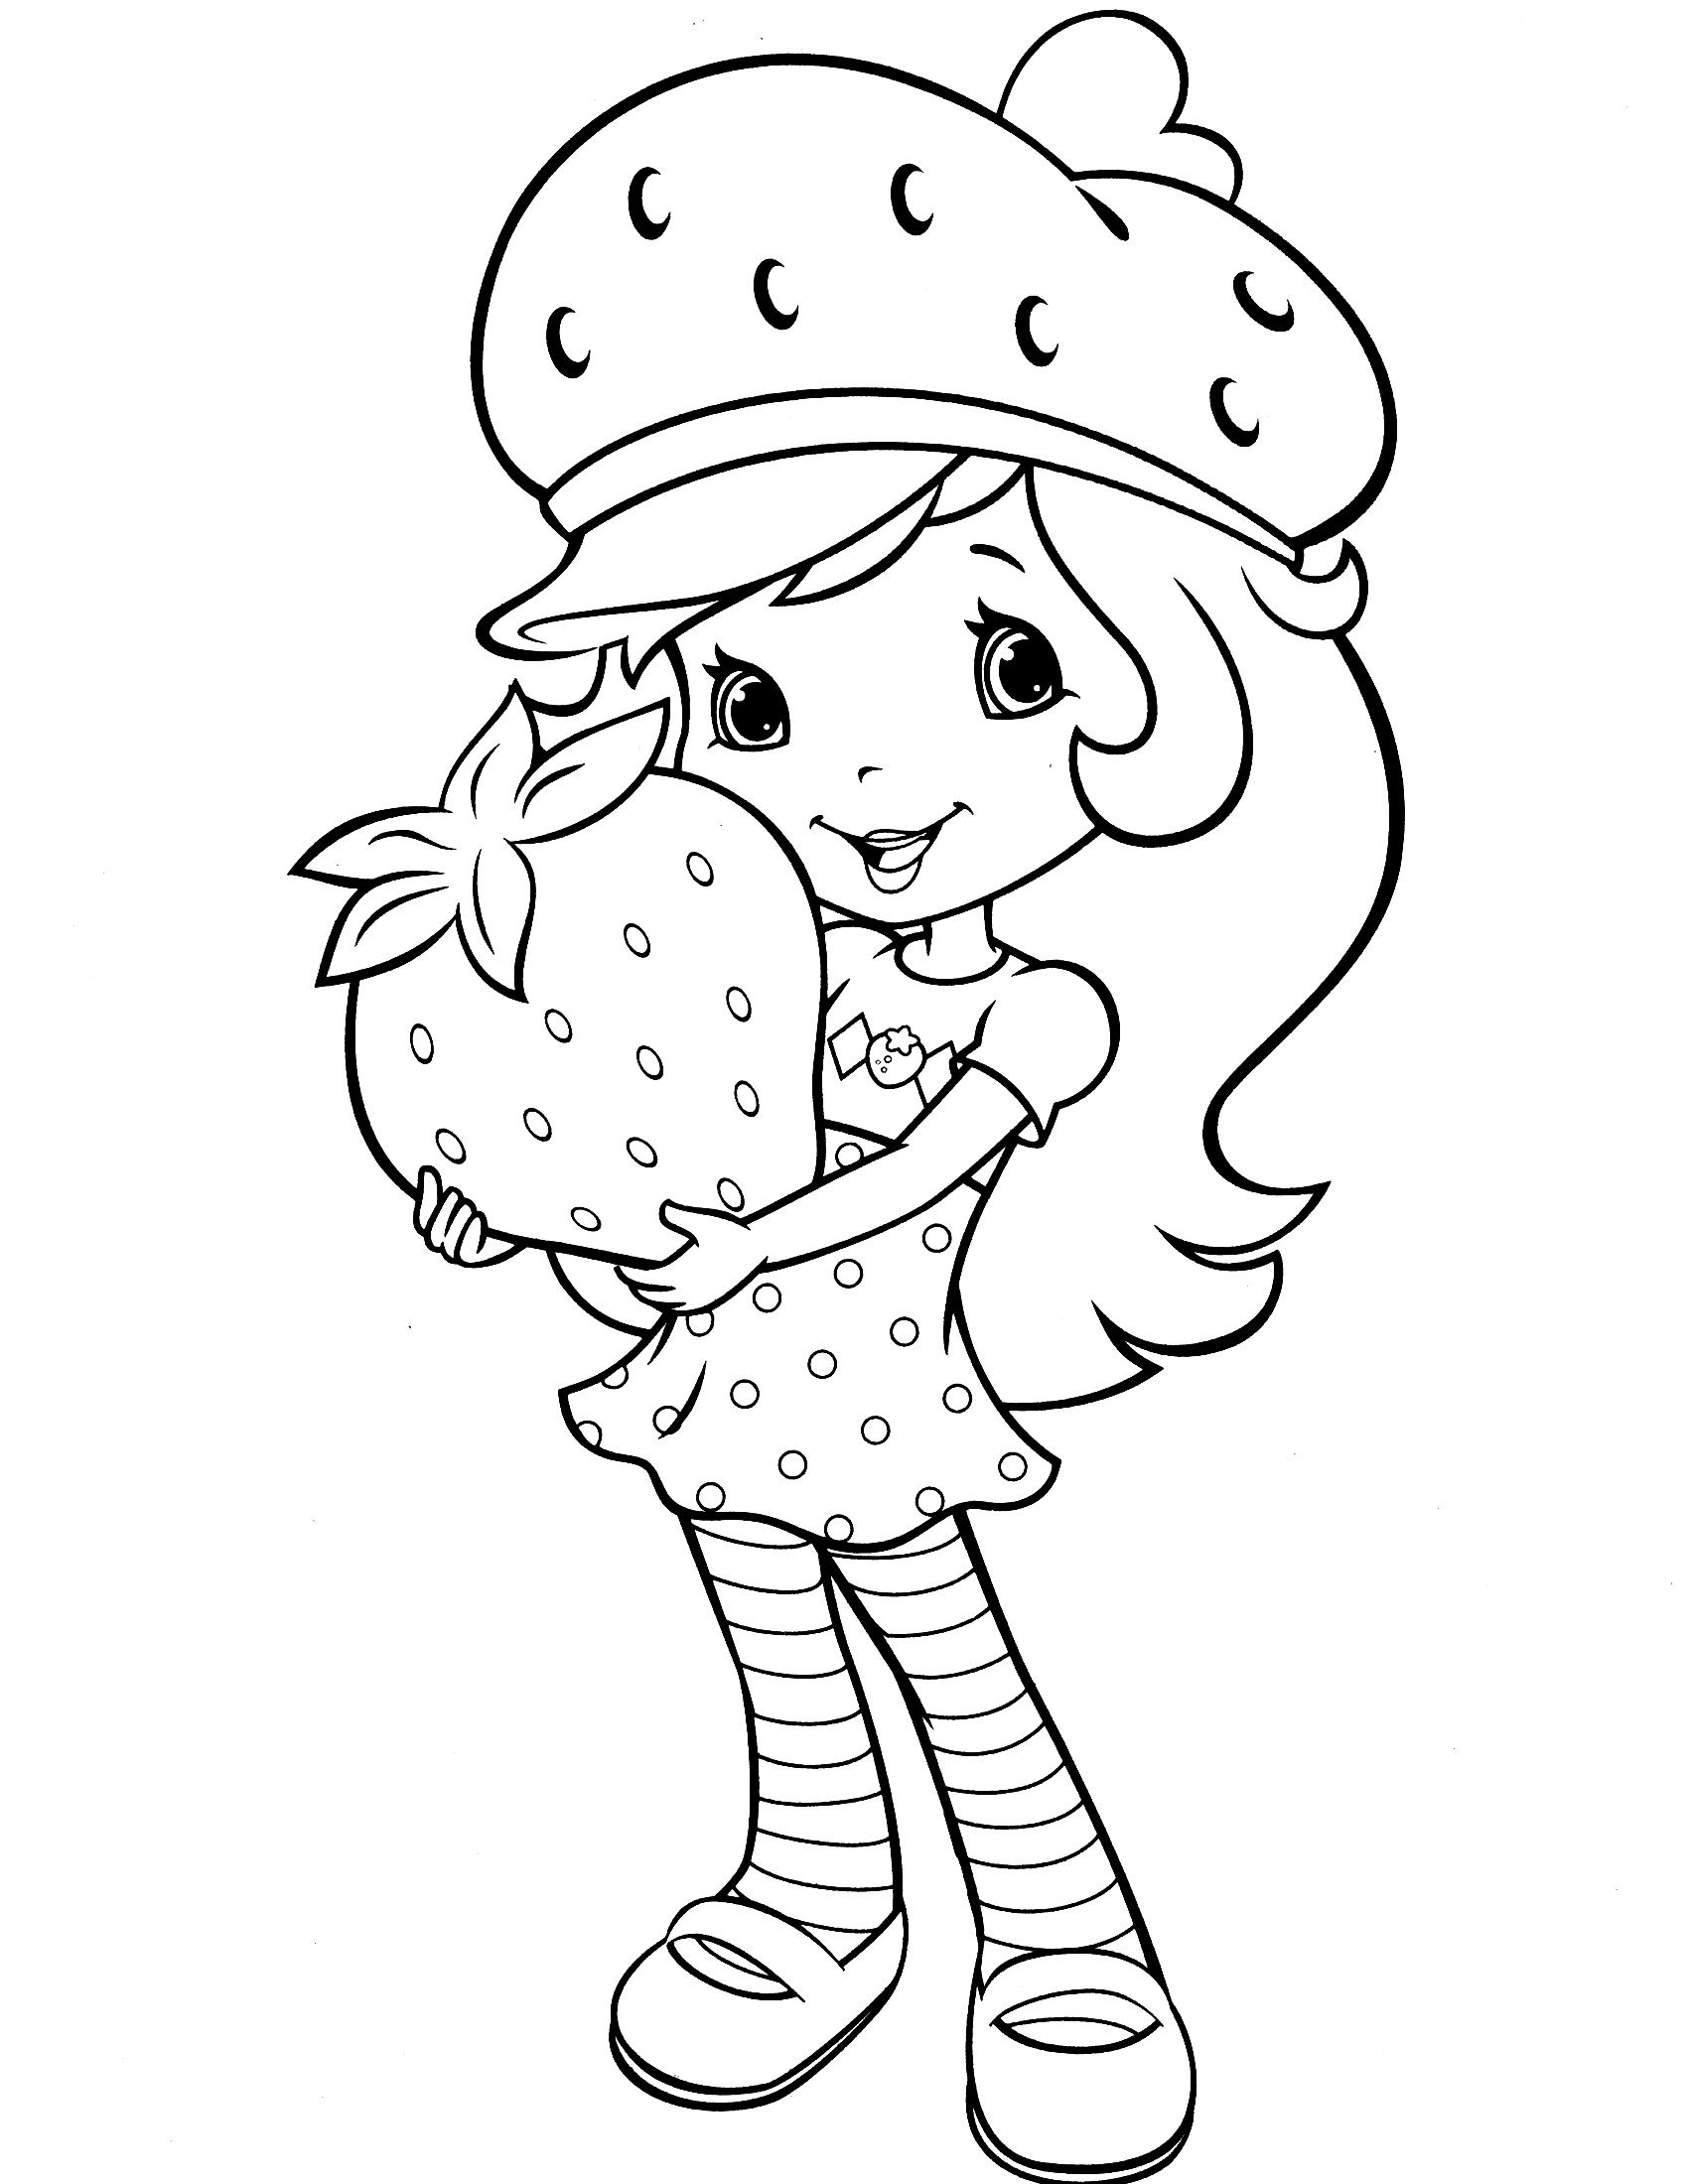 strawberry shortcake drawing pages strawberry shortcake coloring pages coloring pages for kids strawberry drawing pages shortcake